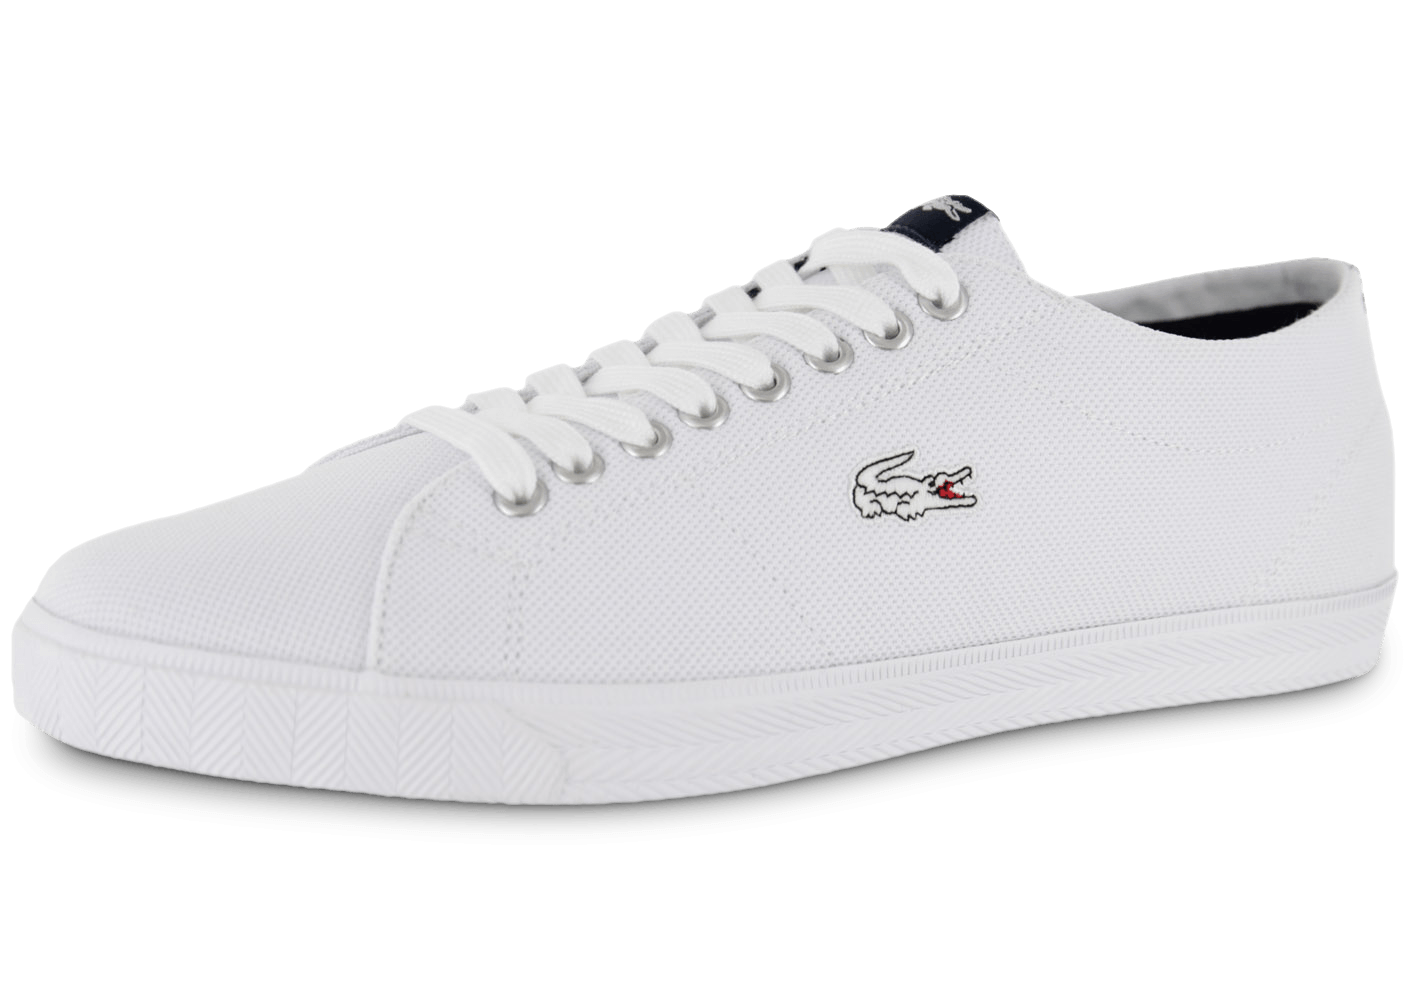 Lacoste Homme Chaussure Homme Lacoste Toile Chaussure En En Homme En Lacoste Chaussure Toile HIYWD29E